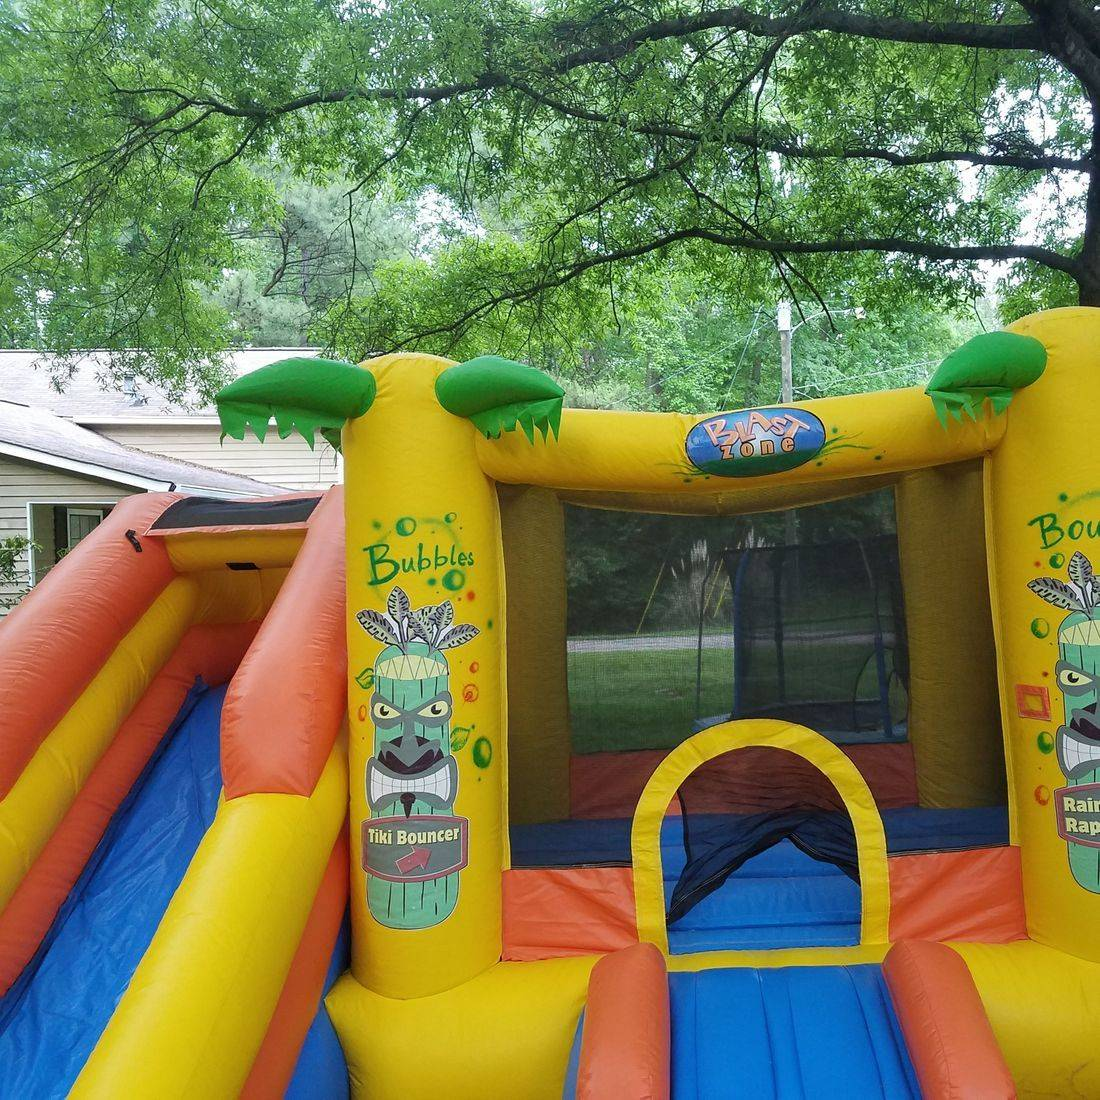 Hawaiian style bounce house 10x10 bounce area with 2 slides dry $100 for 3 hours plus delivery fee  or $150 all day(free delivery up to 25 miles)